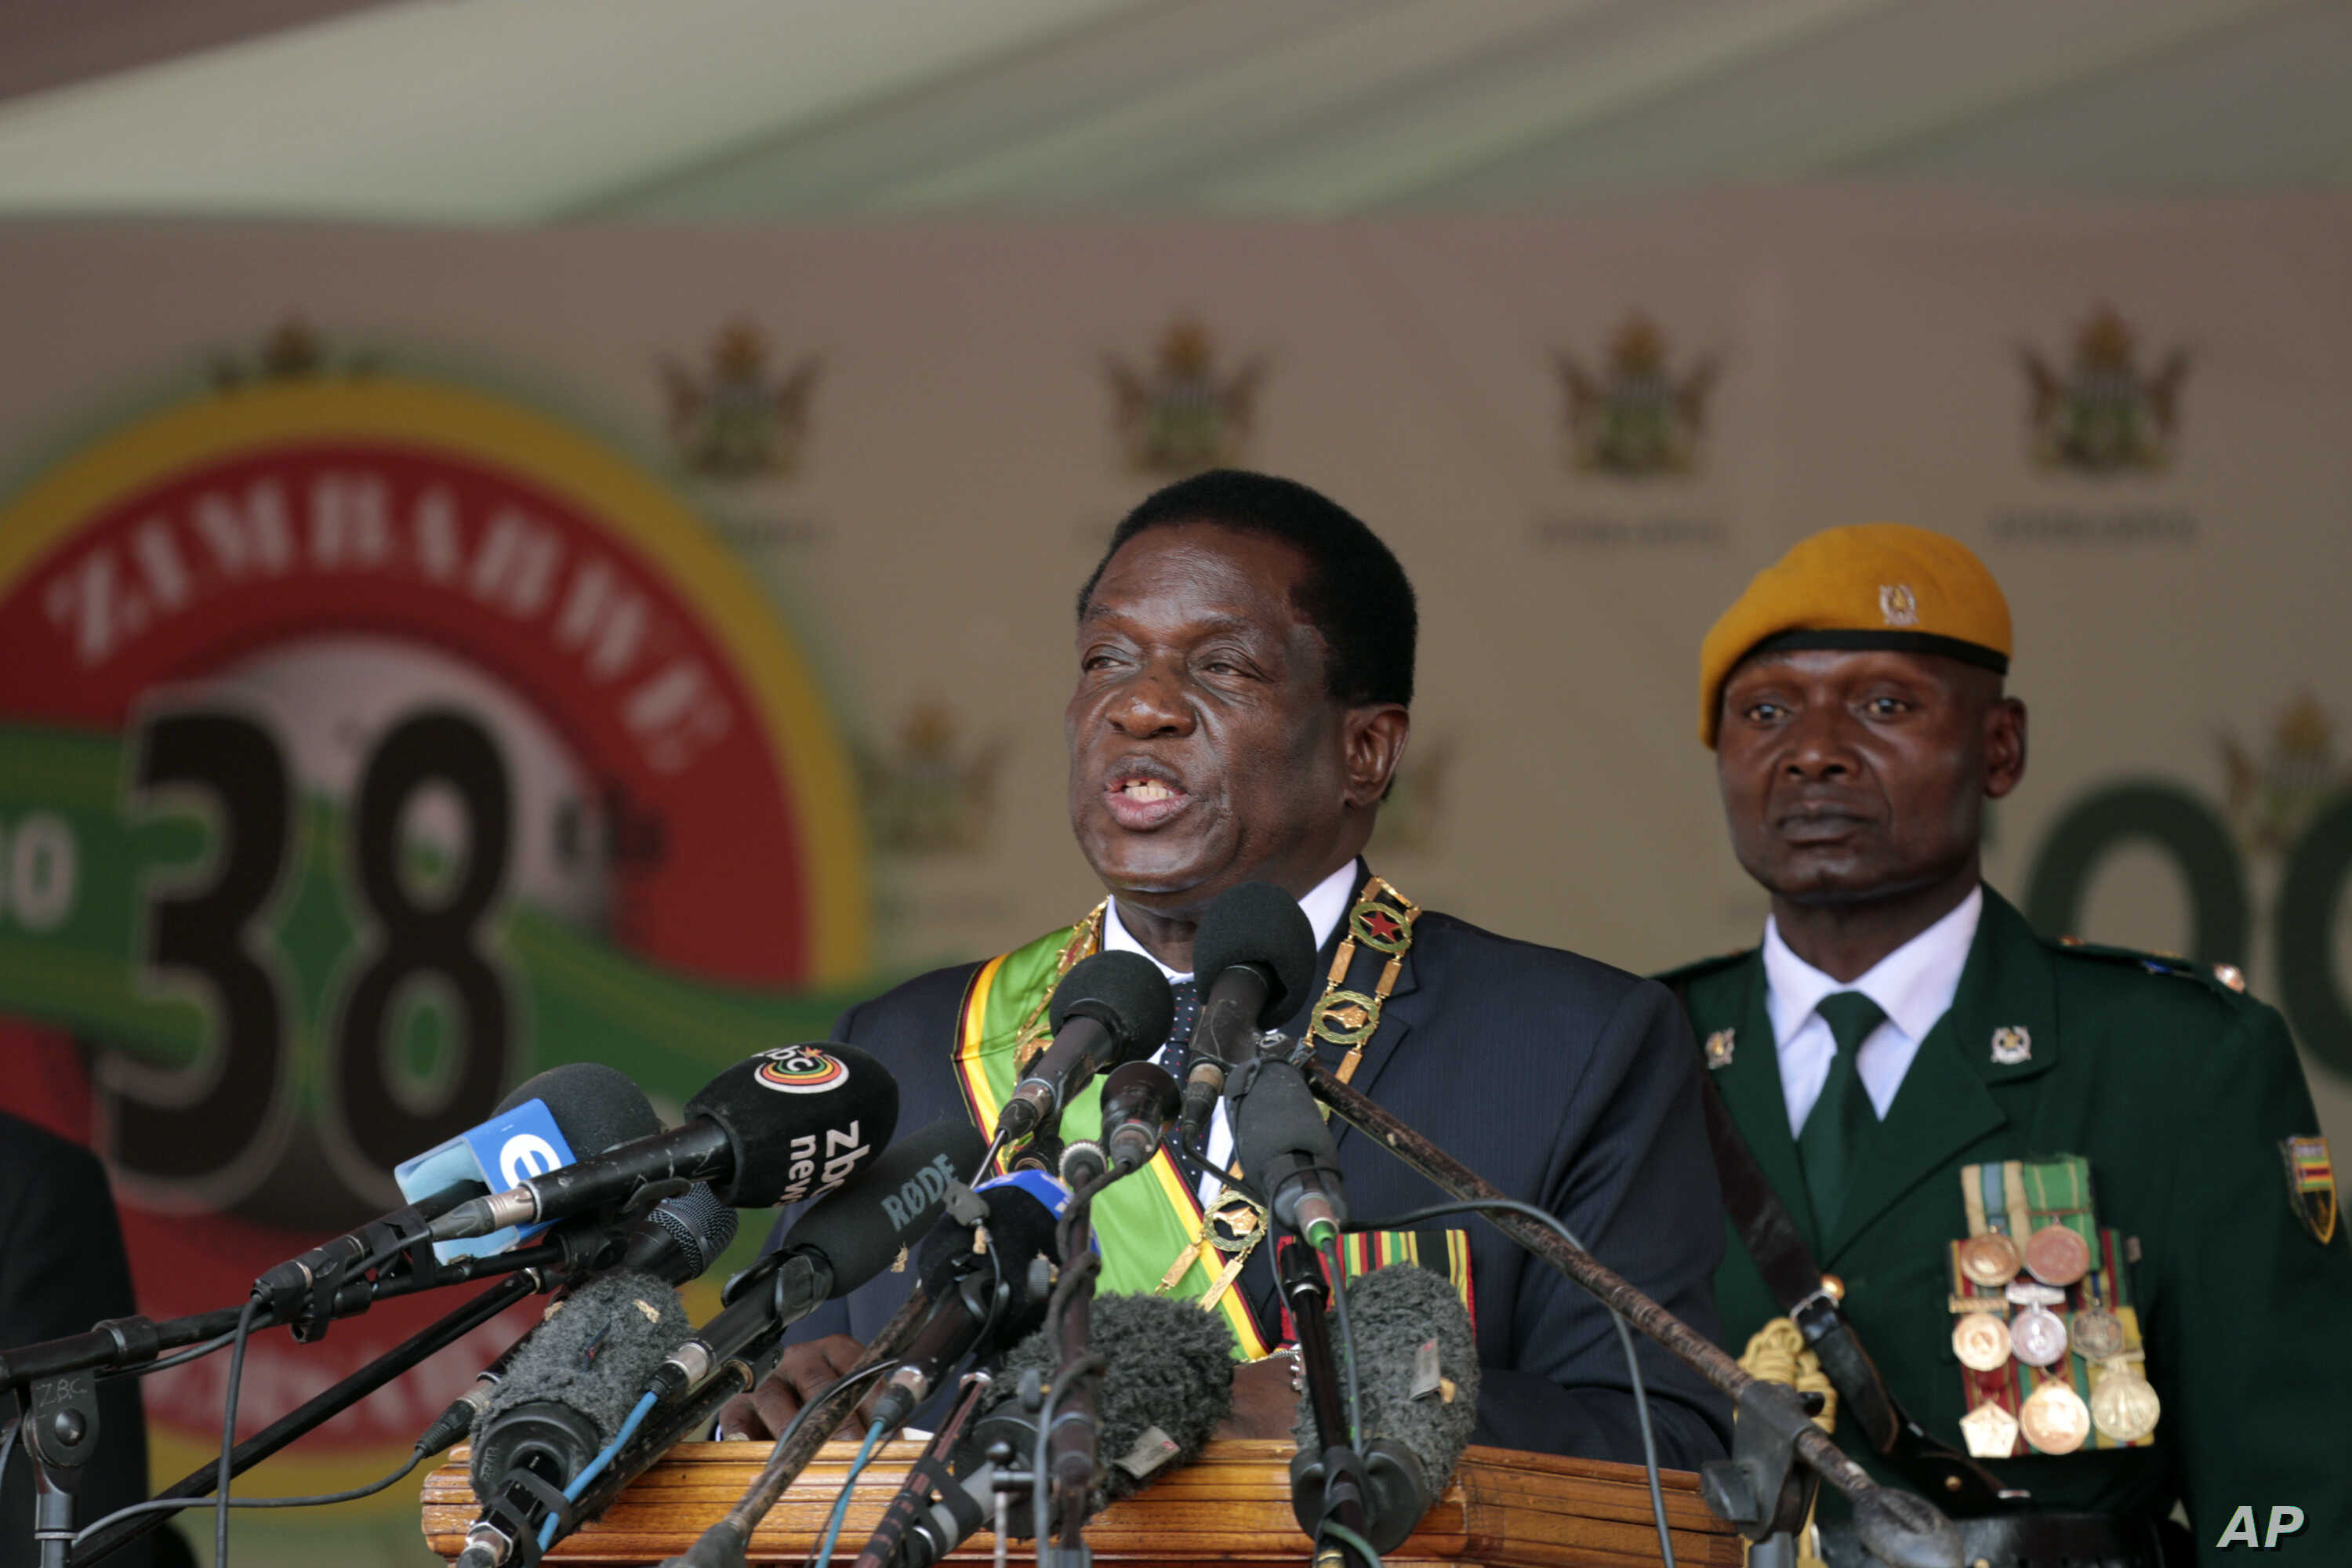 Zimbabwe's President Emmerson Mnangagwa delivers his speech during the 38th anniversary of Independence celebrations at the National Sports Staduim in Harare, April, 18, 2018.